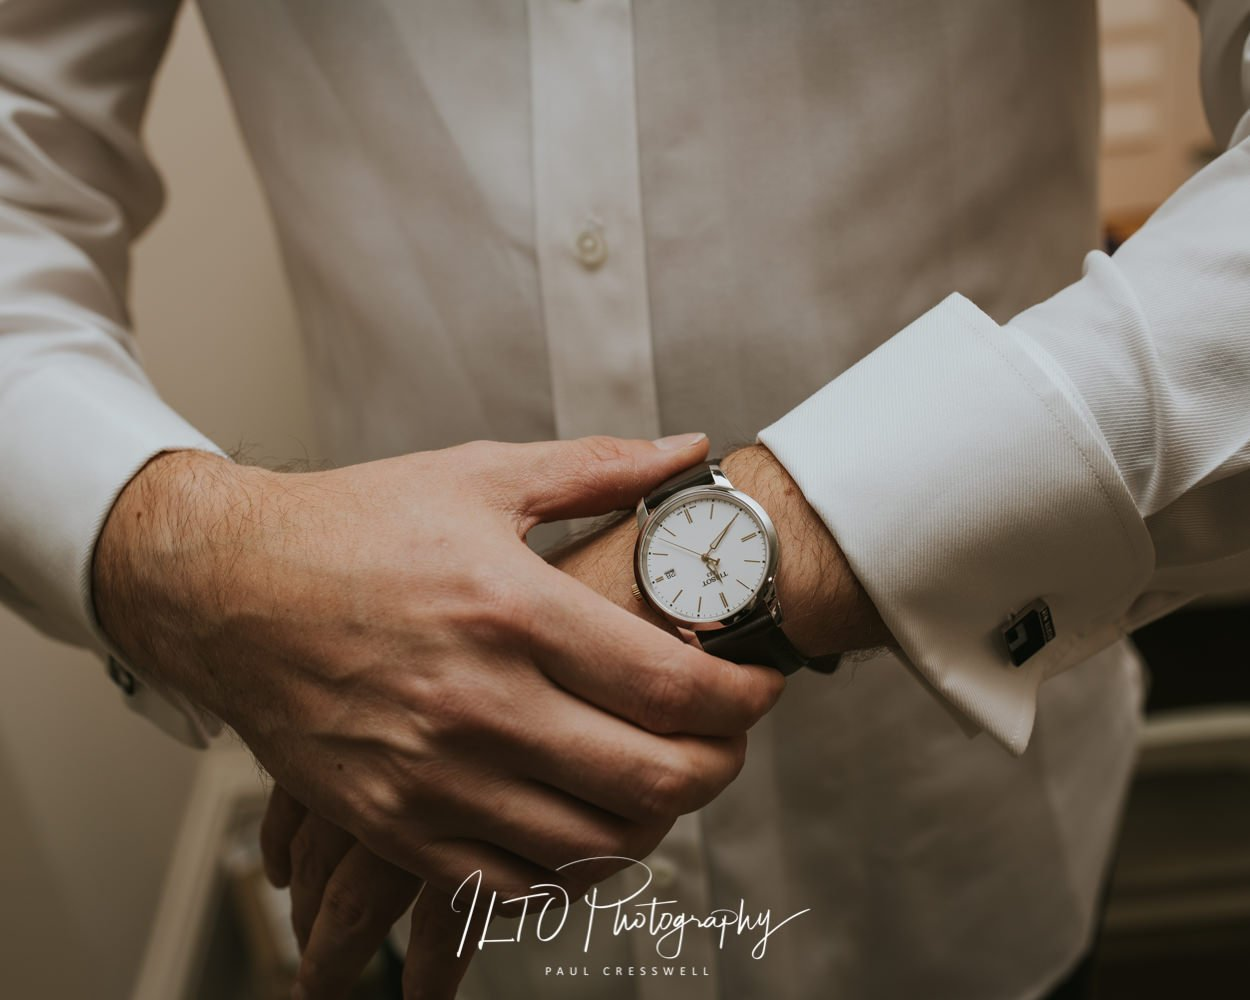 Wedding present ideas for grooms watch